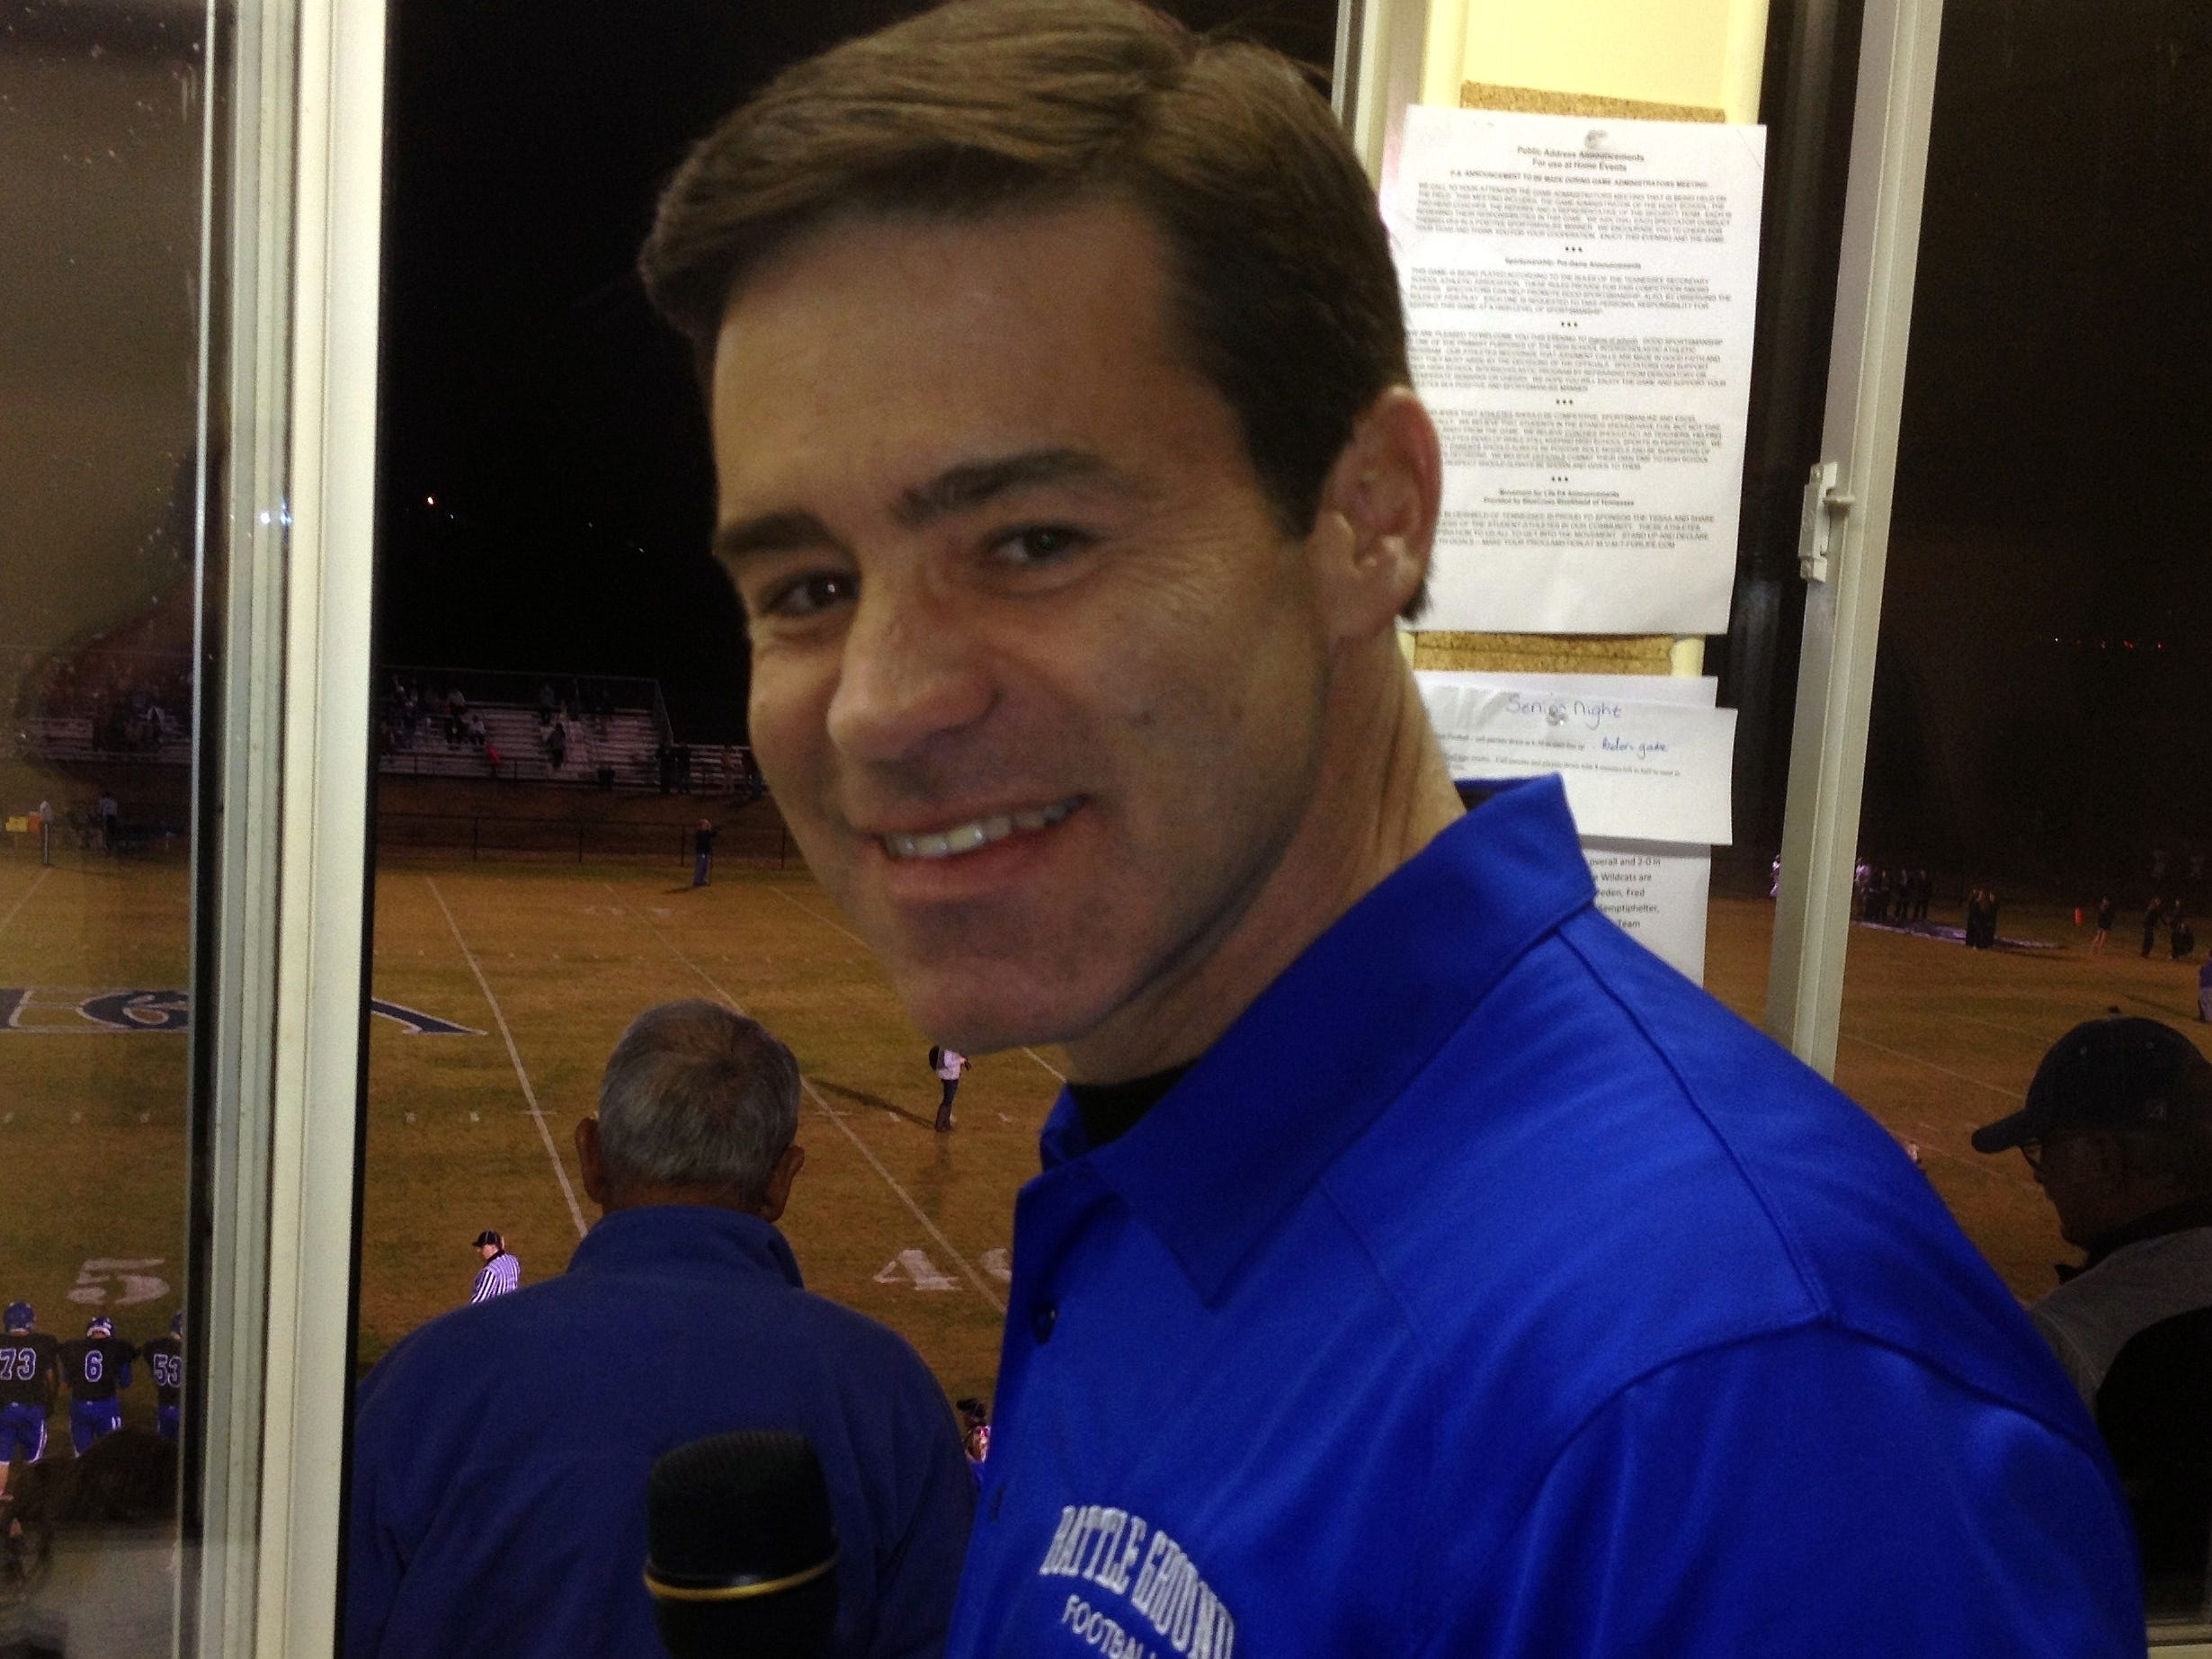 Mike Keith, the voice of the Tennessee Titans, served as the public-address announcer for every home football game this season at Battle Ground Academy in 2013.